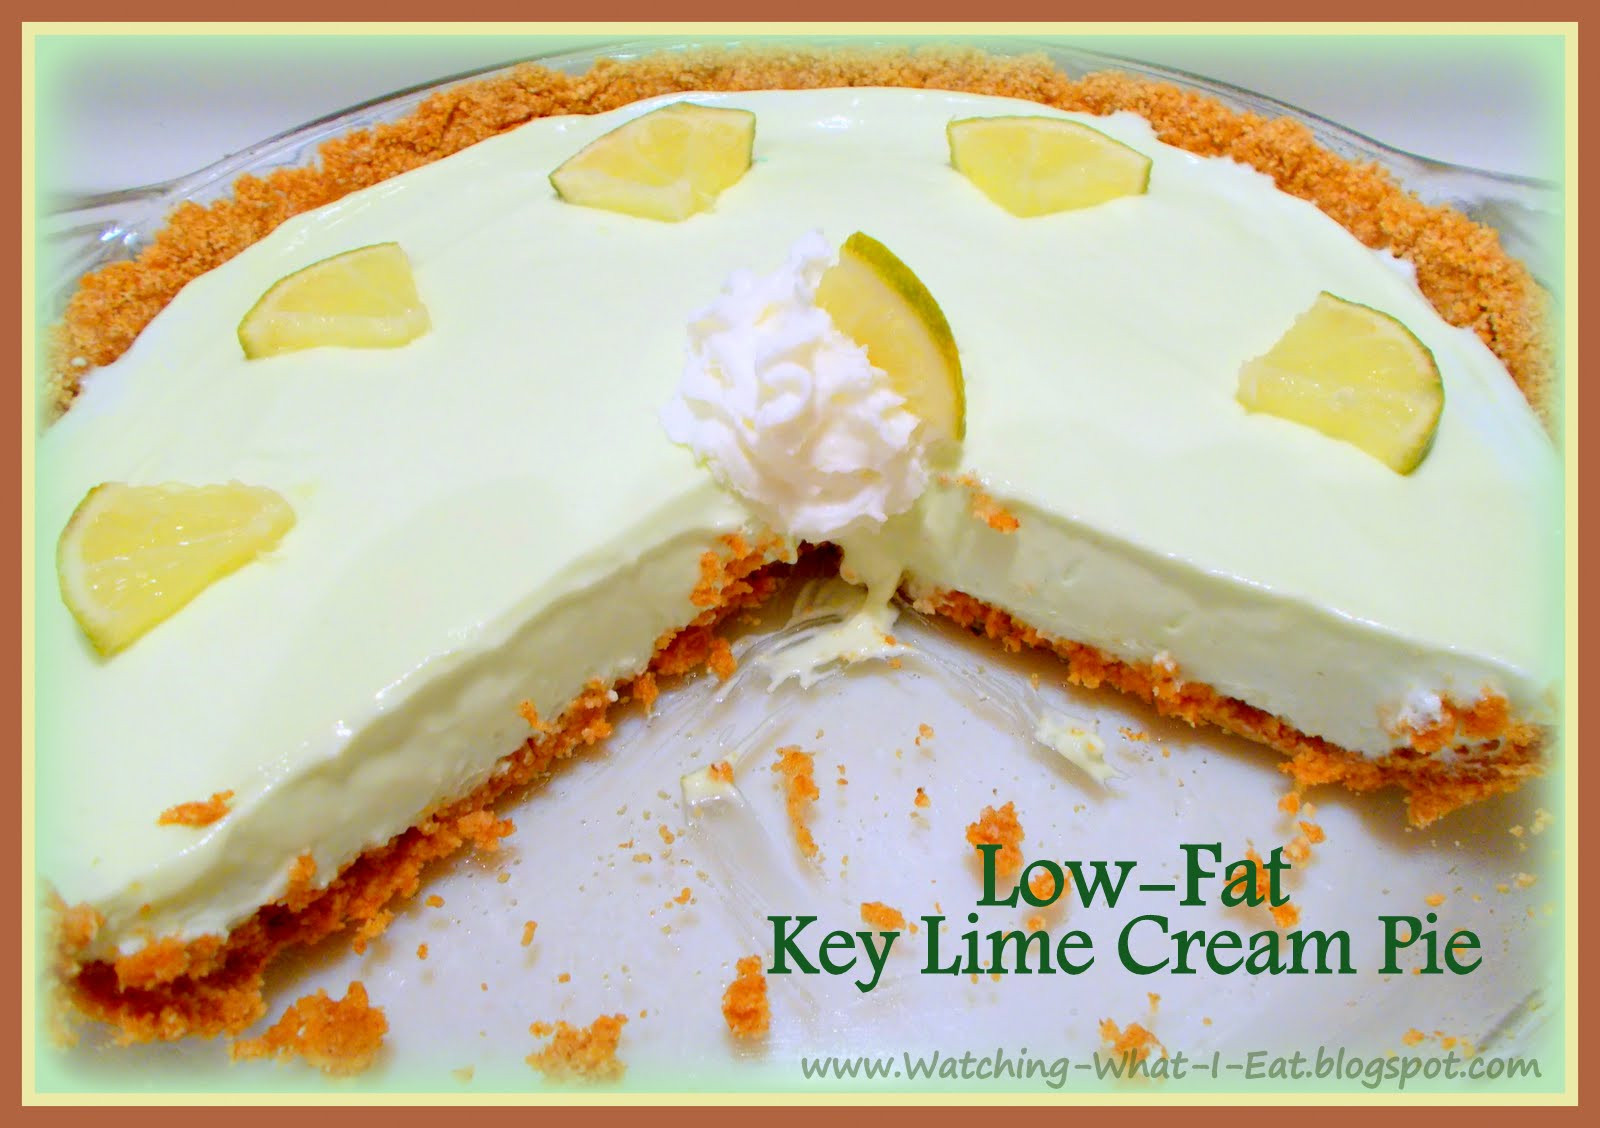 Low Calorie Key Lime Pie  Watching What I Eat Key Lime Cream Pie with No Bake